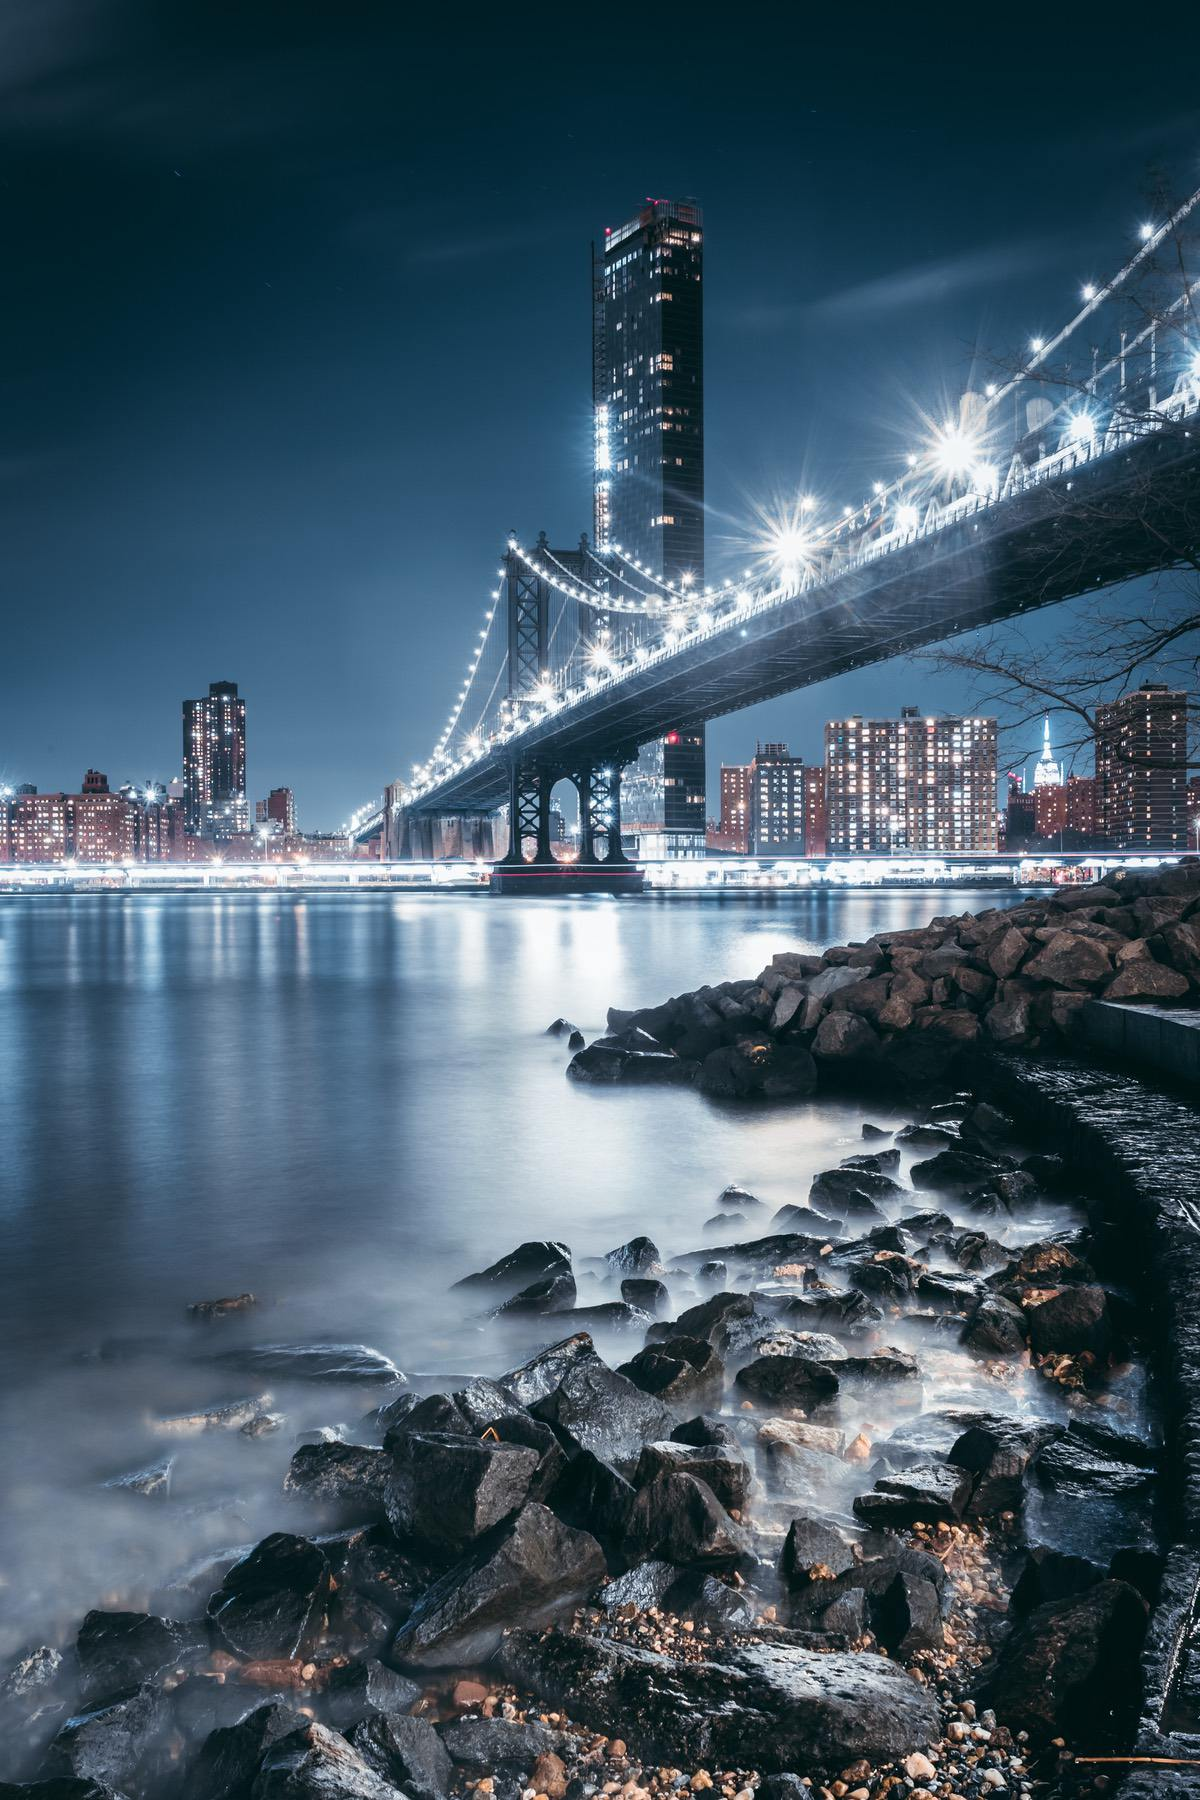 Night time NYC photography